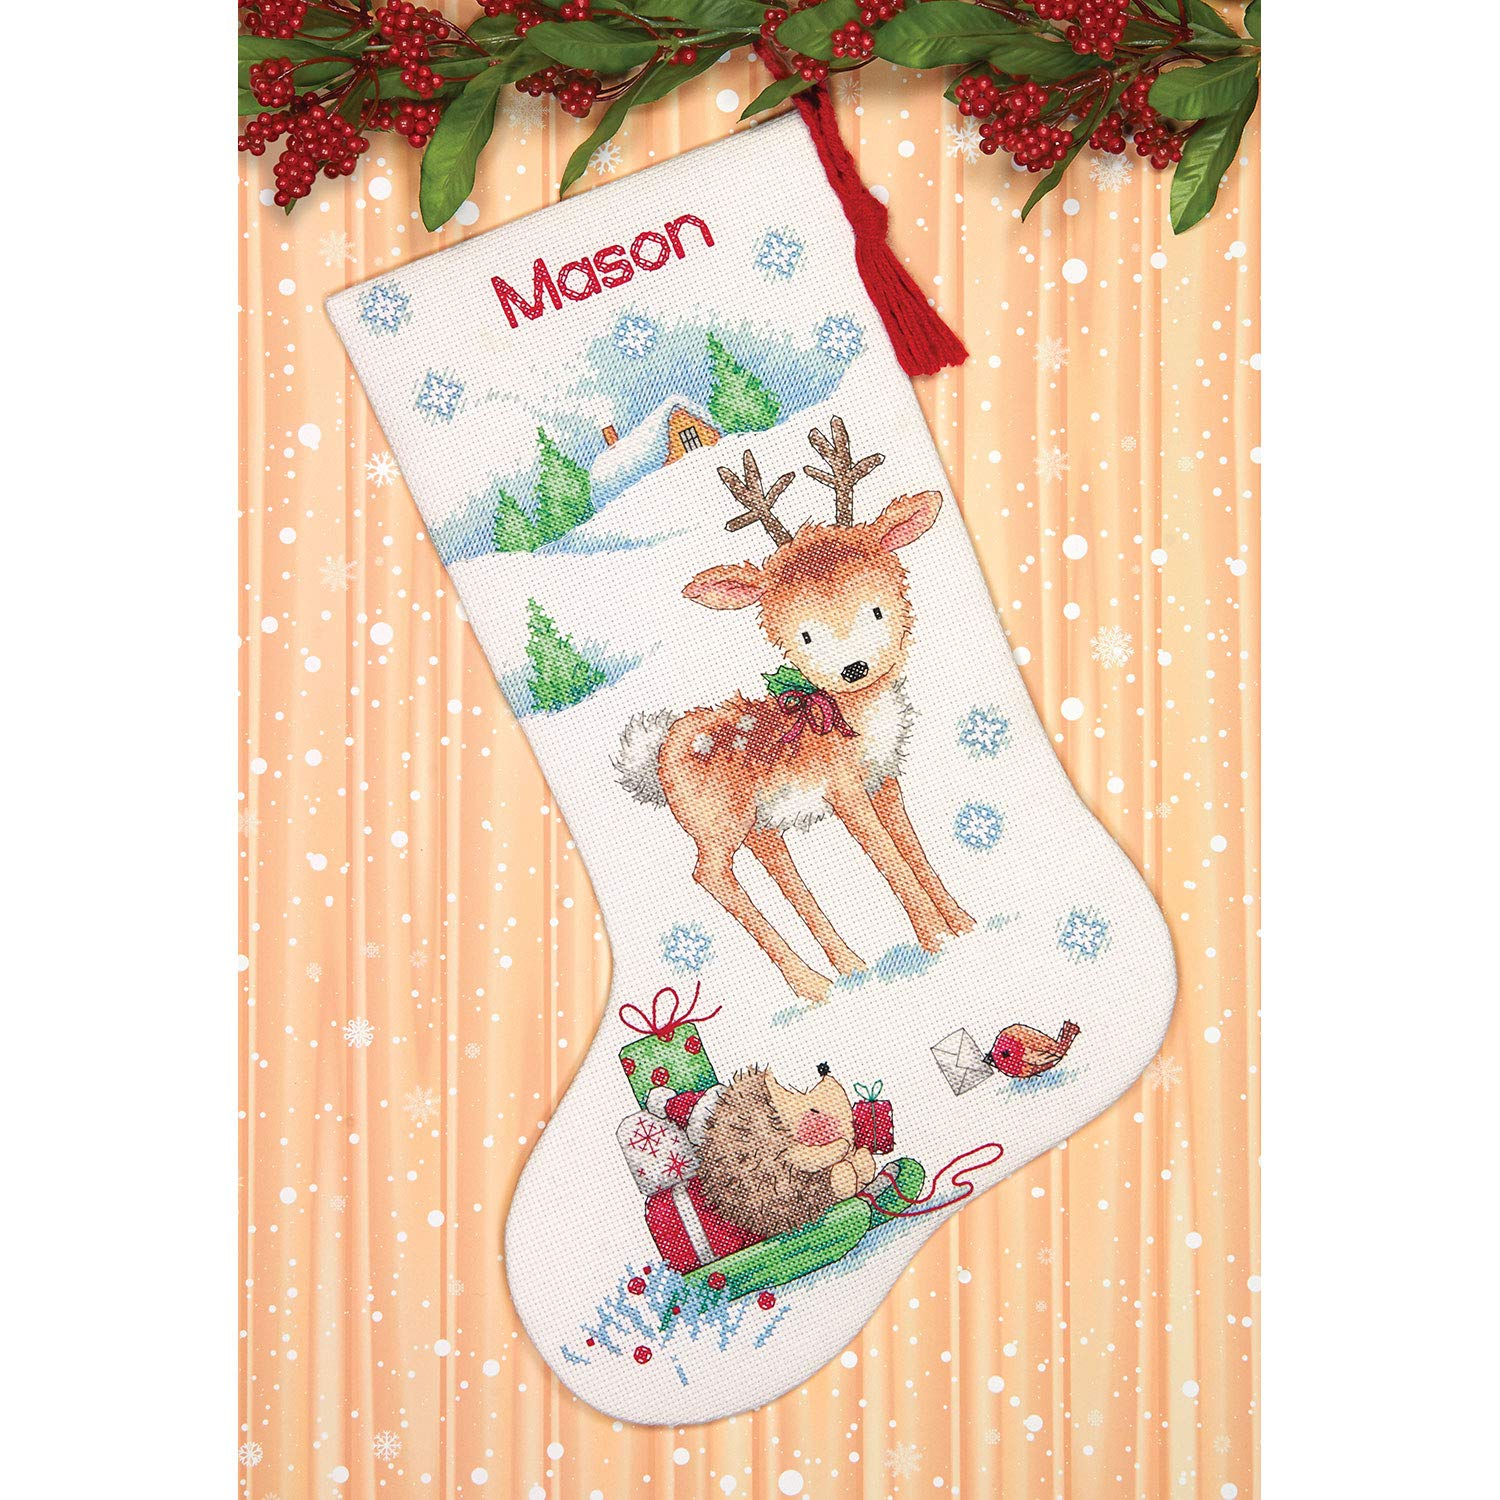 16 White 14 Count Aida Dimensions 70-08978 Cross Stitch Reindeer and Hedgehog Personalized Christmas Stocking Kit